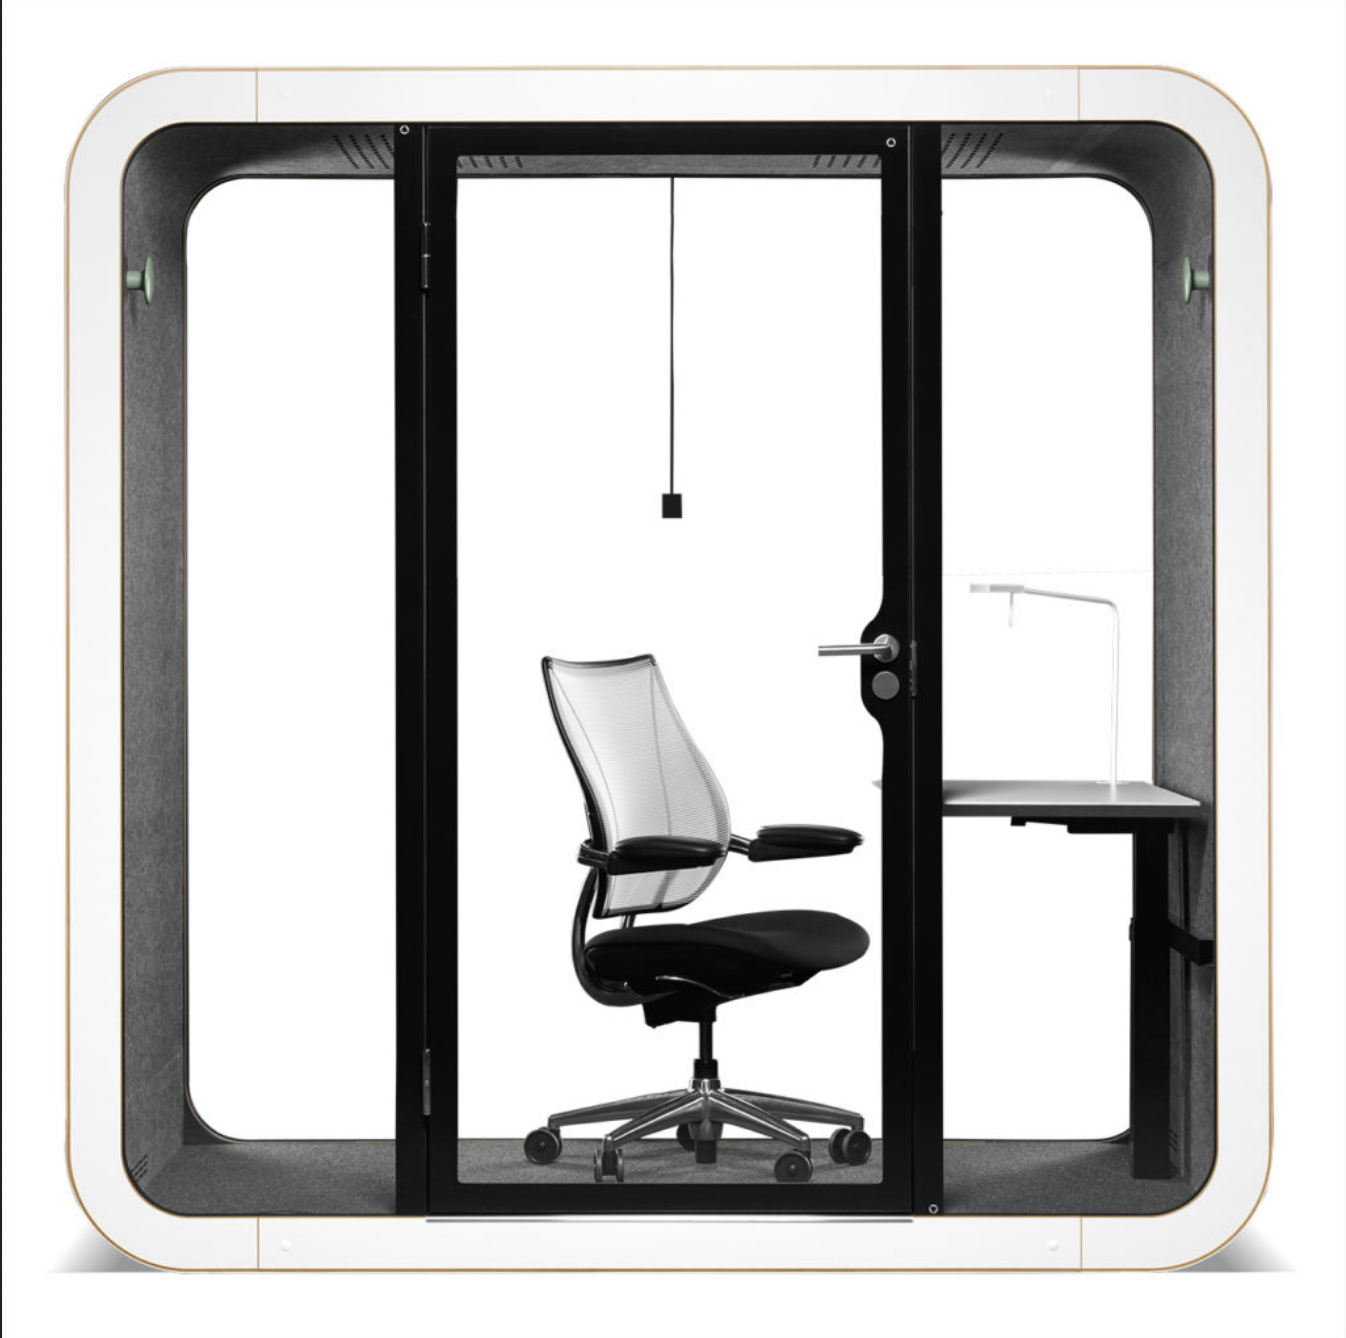 Phone Booth By Framery Me Time Chair Example Table Height 72 Cm Light Luxo Ninety Disponible Immediate Mobilier Bureau Mobilier Amenagement Bureau